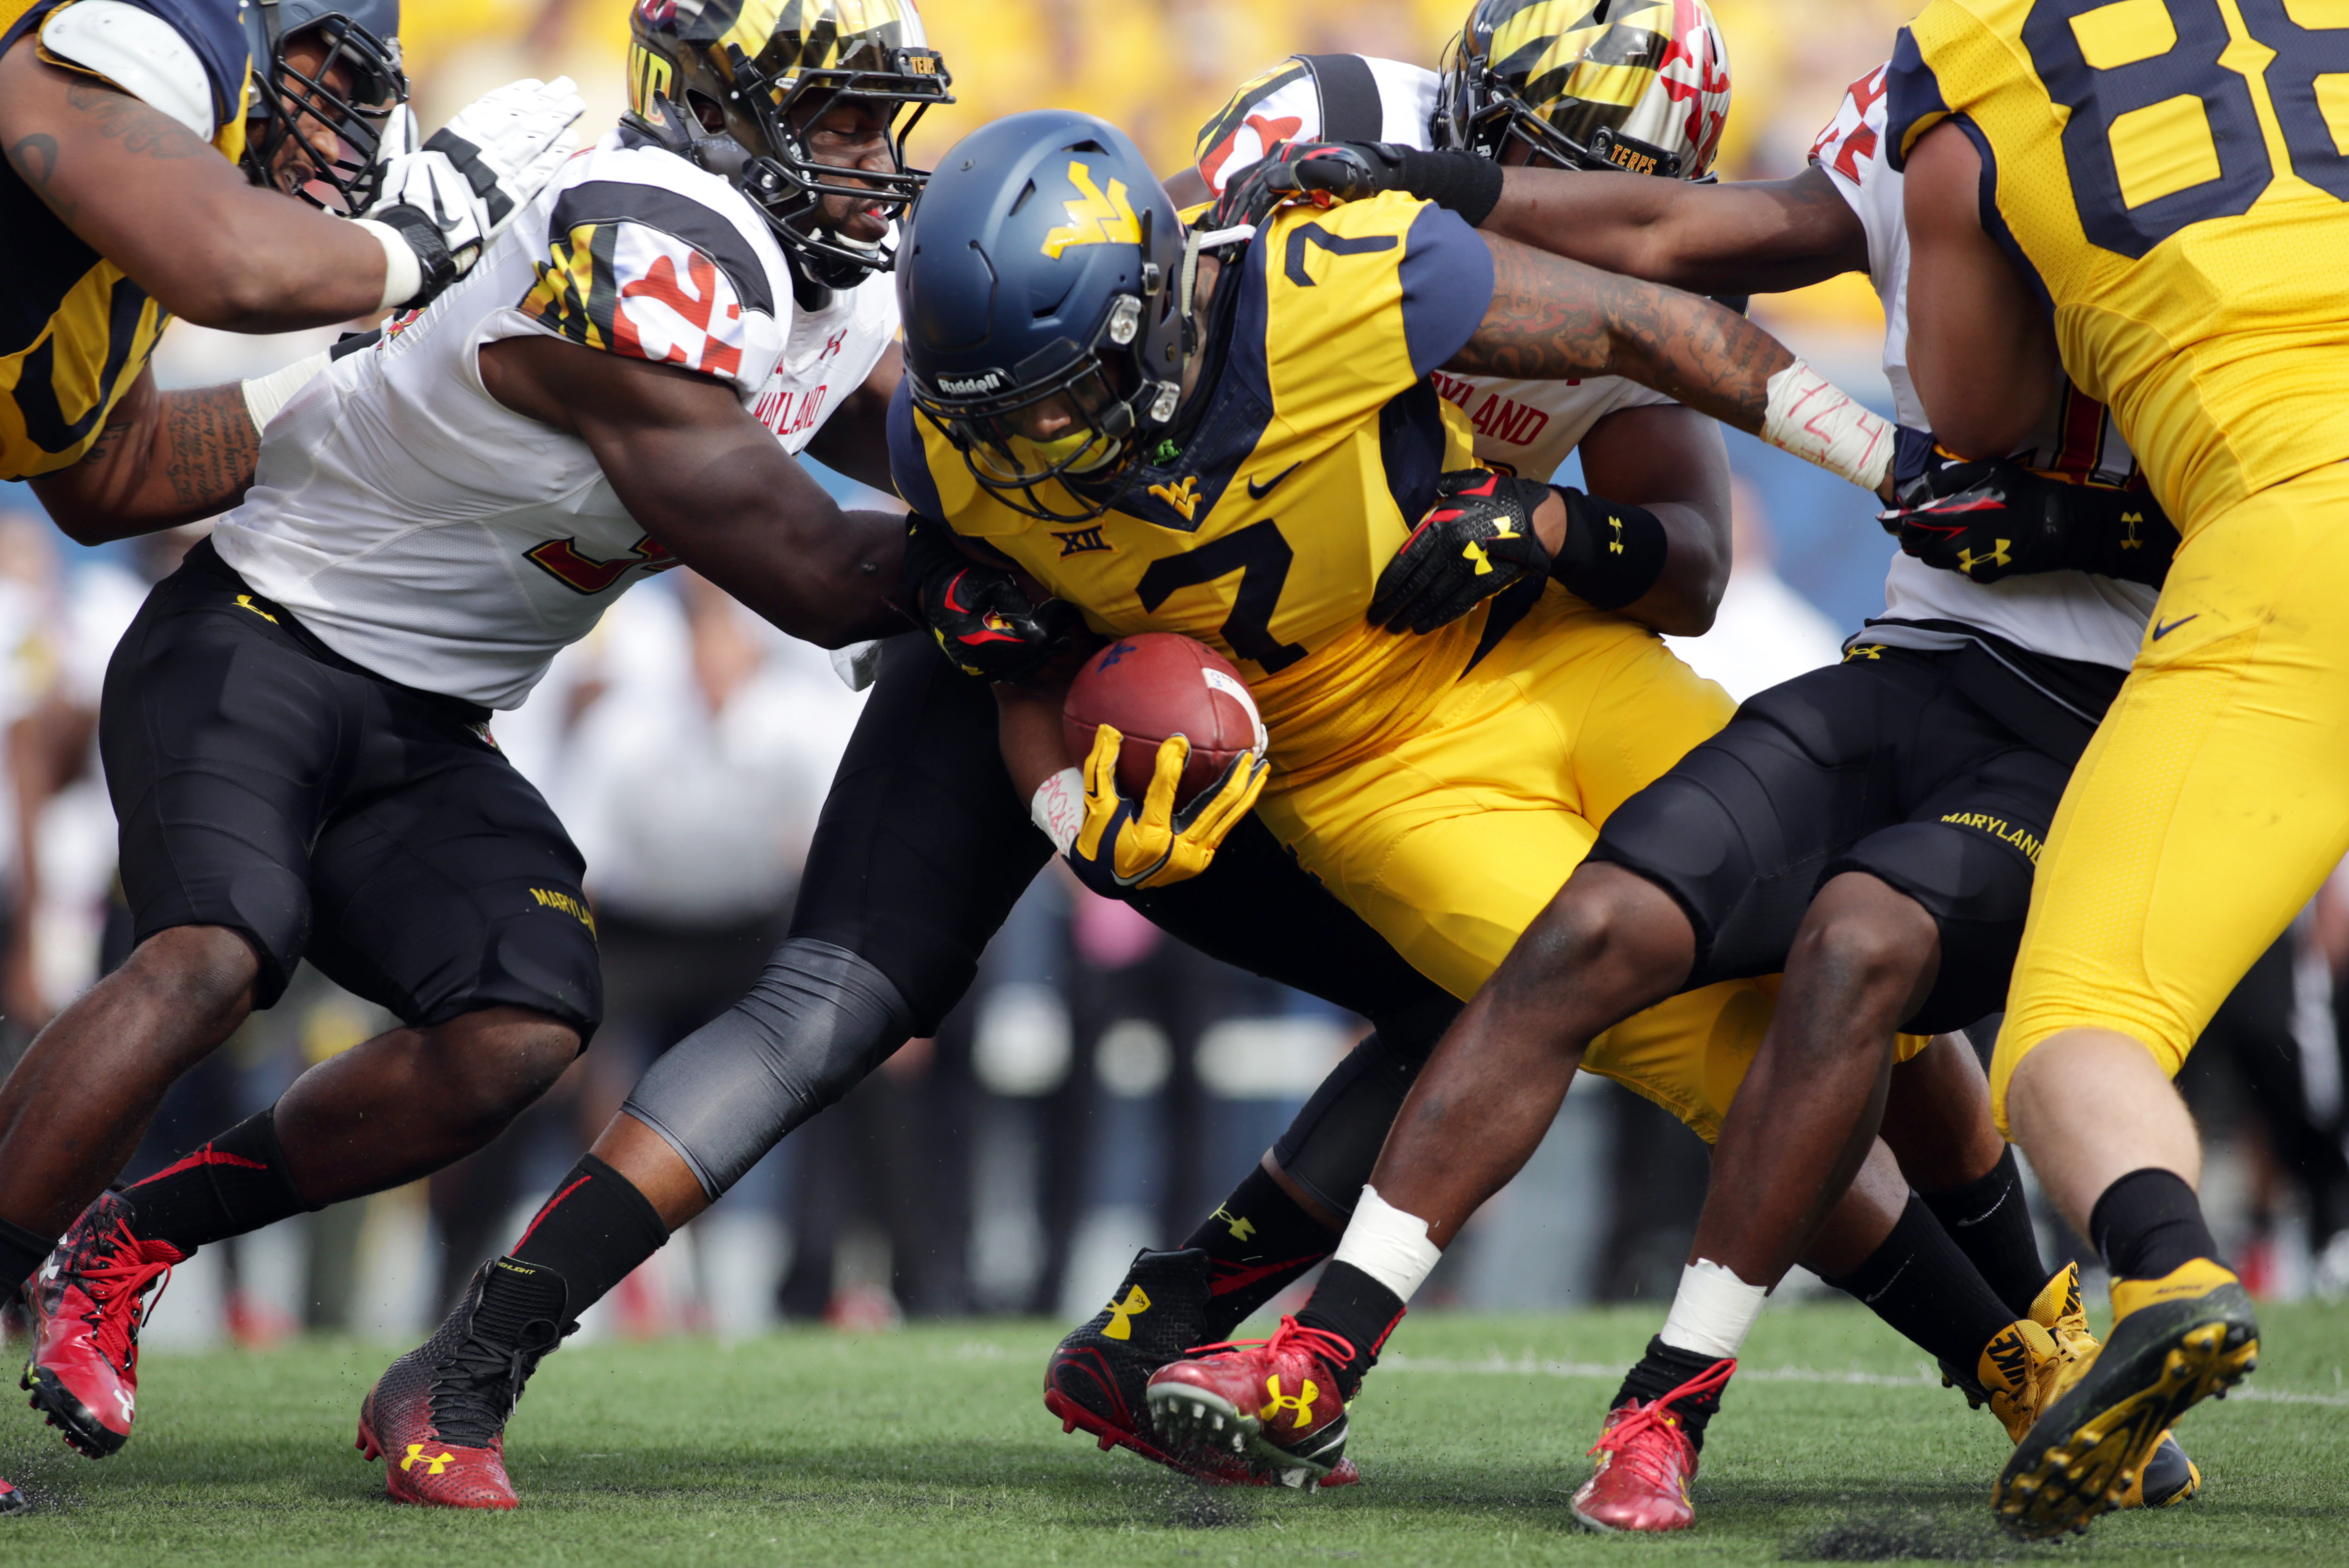 West Virginia running back Rushel Shell (7) is tackled by Maryland linebacker Jefferson Ashiru (34) during the first half of an NCAA college football game, Saturday, Sept. 26, 2015, in Morgantown, W.Va. (AP Photo/Raymond Thompson)